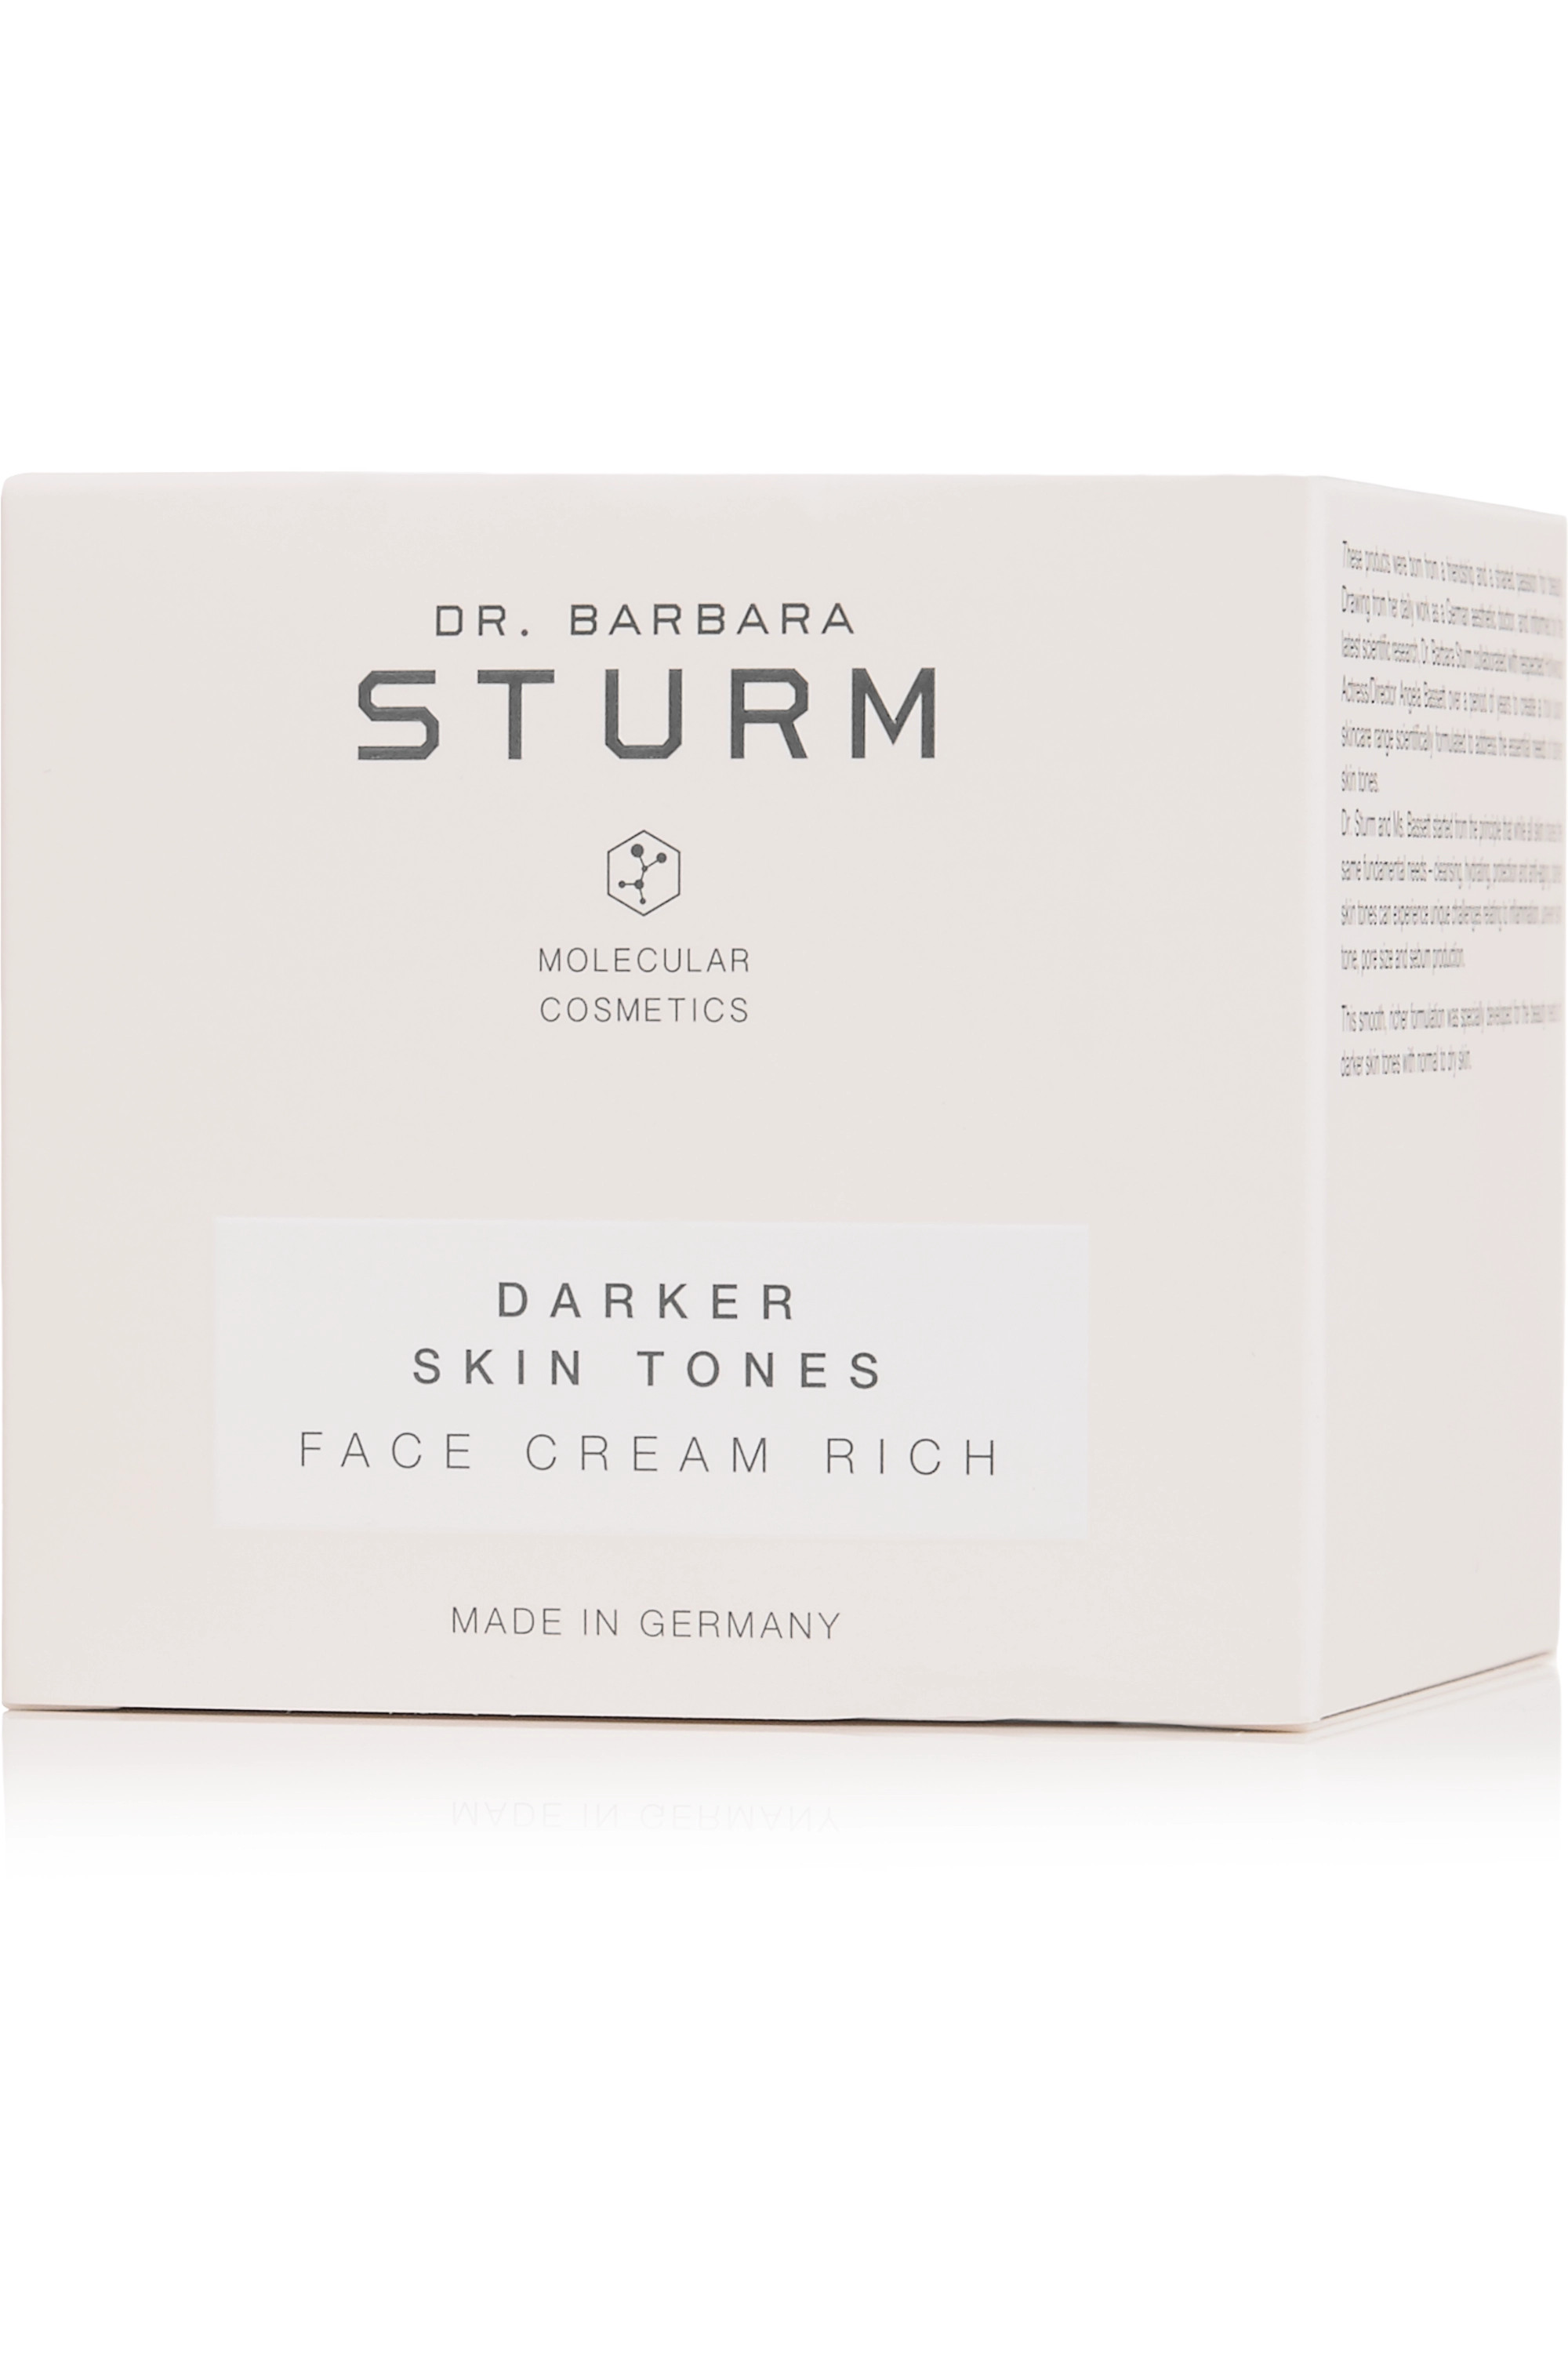 Dr. Barbara Sturm Darker Skin Tones Face Cream Rich, 50ml